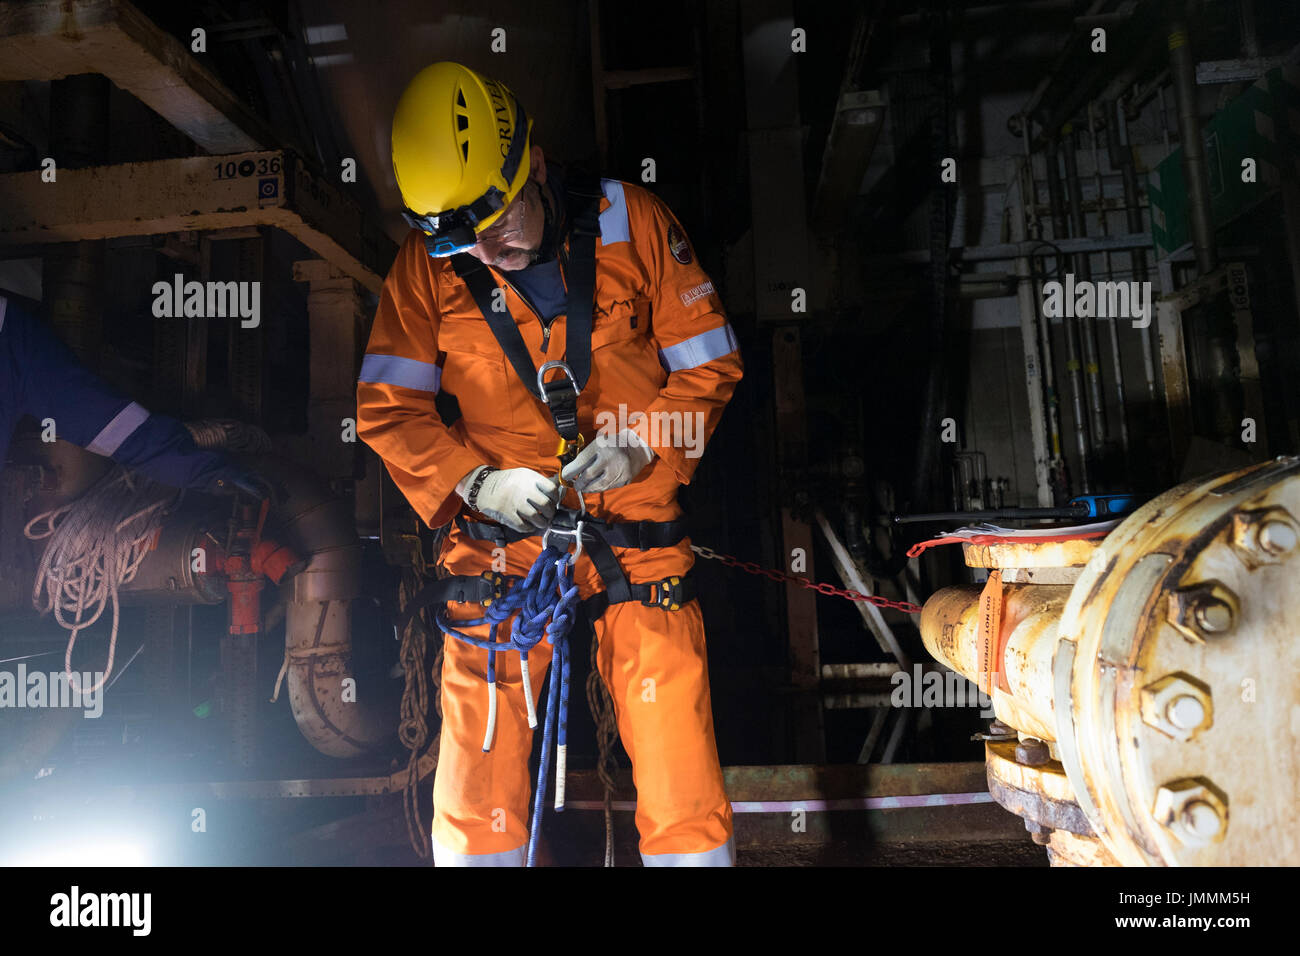 An industrial rope access technician setting up harness, on north sea oil and gas installation wearing Orange coveralls. credit: LEE RAMSDEN / ALAMY - Stock Image